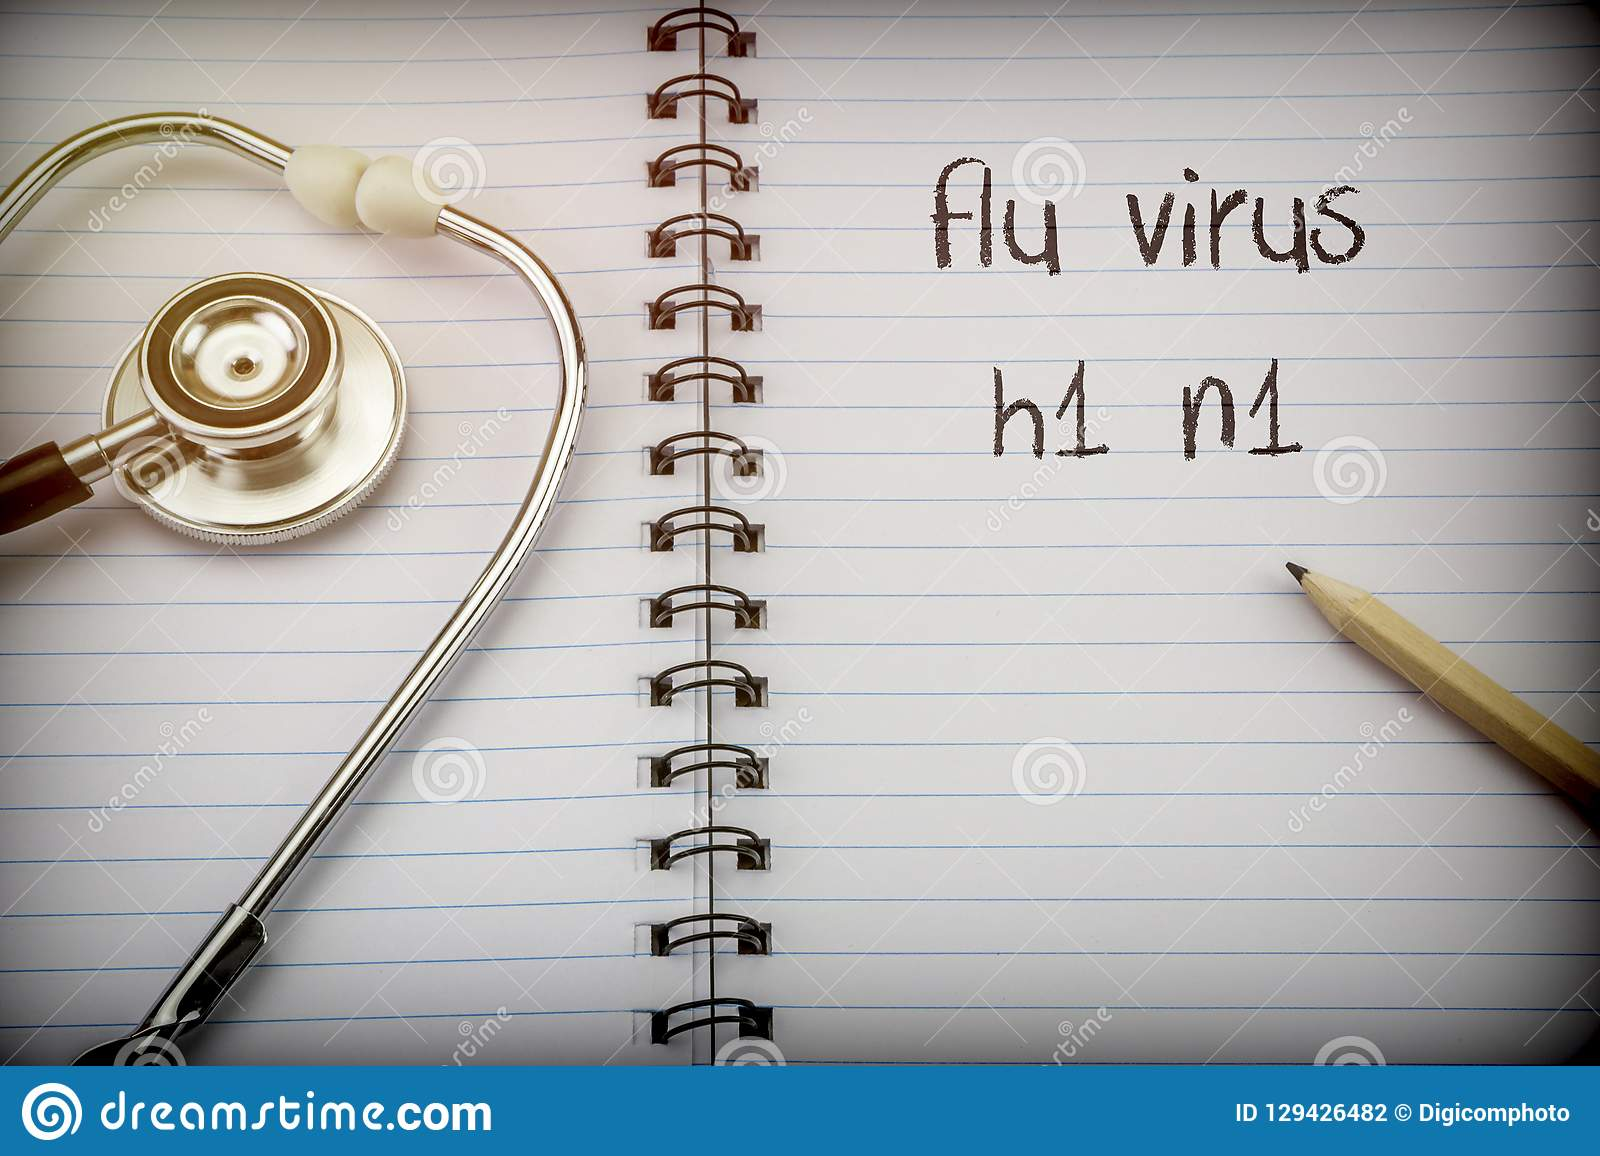 Stethoscope on notebook and pencil with flu virus h1 n1 words as